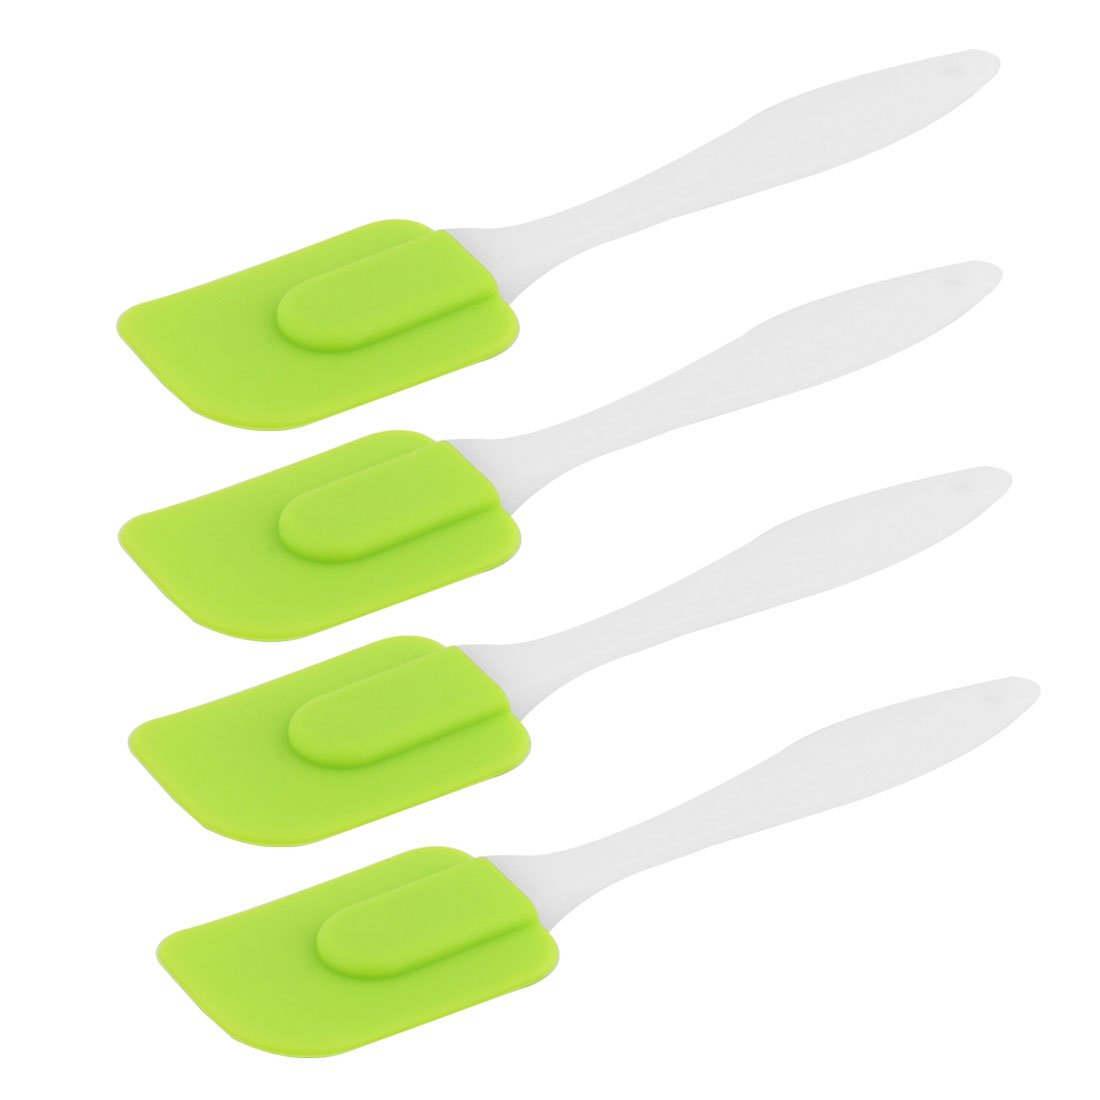 uxcell Silicone Head Plastic Handle Kitchen Heat Resistant Nonstick Spatula Scraper 4 PCS Green by uxcell